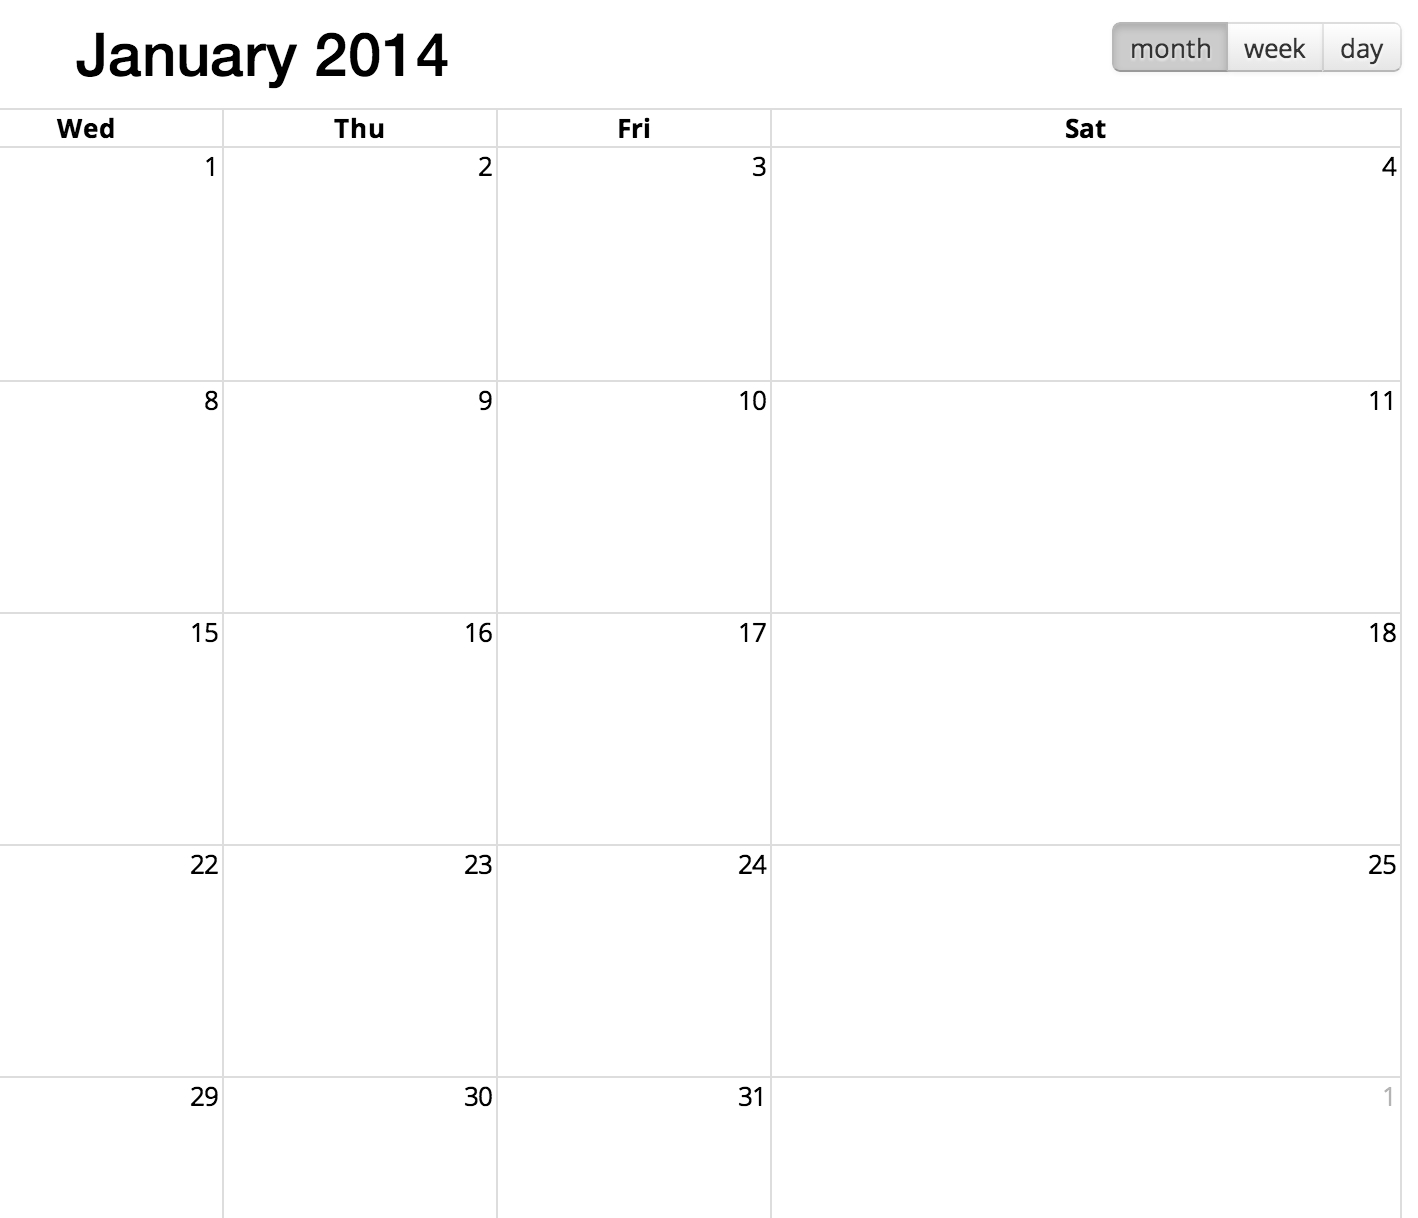 Jquery Fullcalendar - Can I Programmatically Resize The